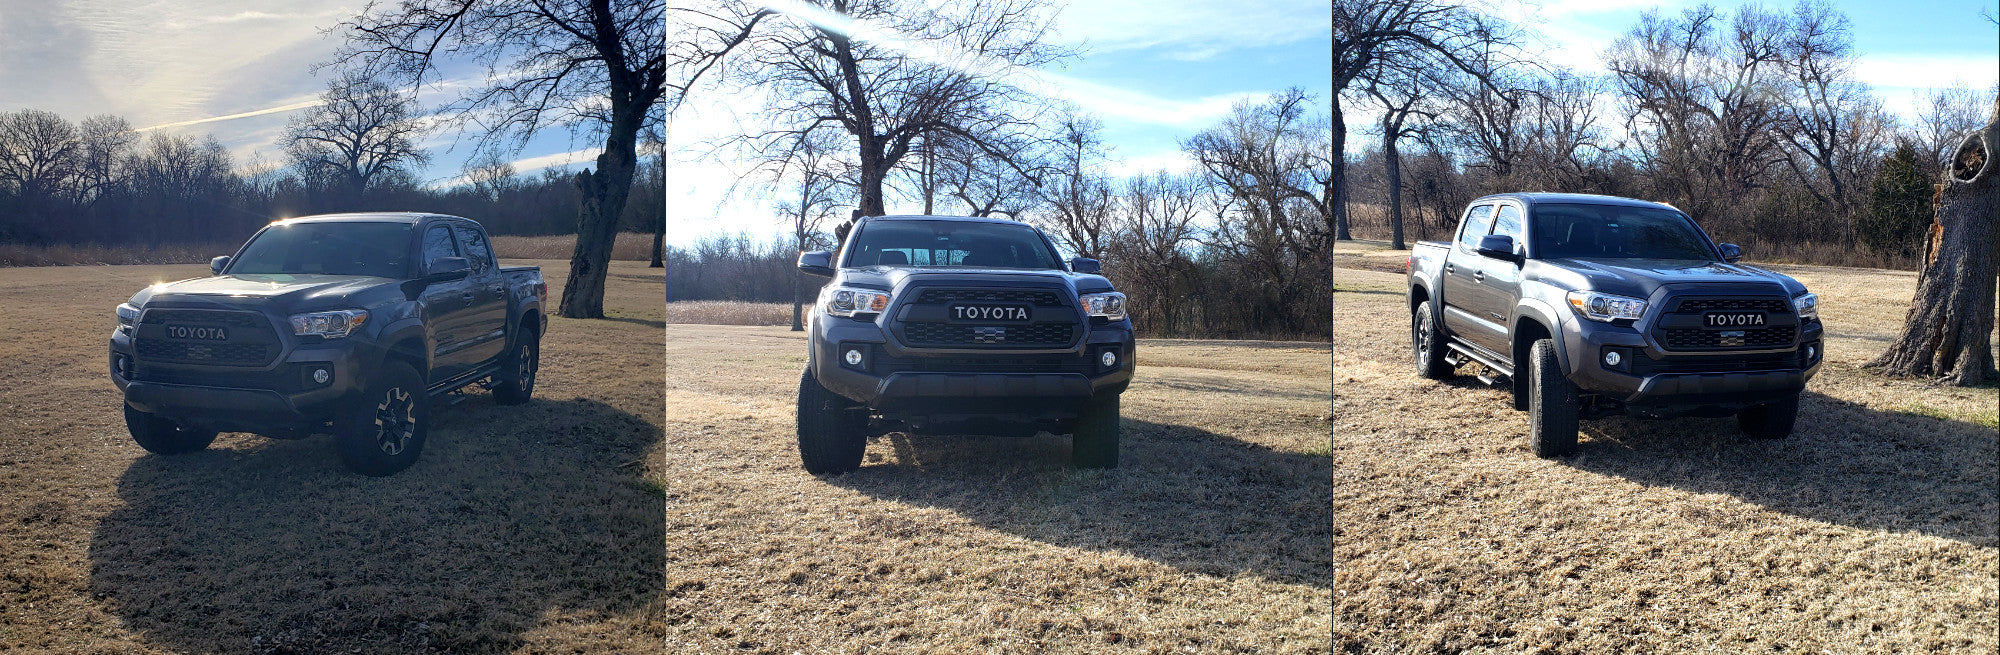 tacoma-trd-pro-grill-installed